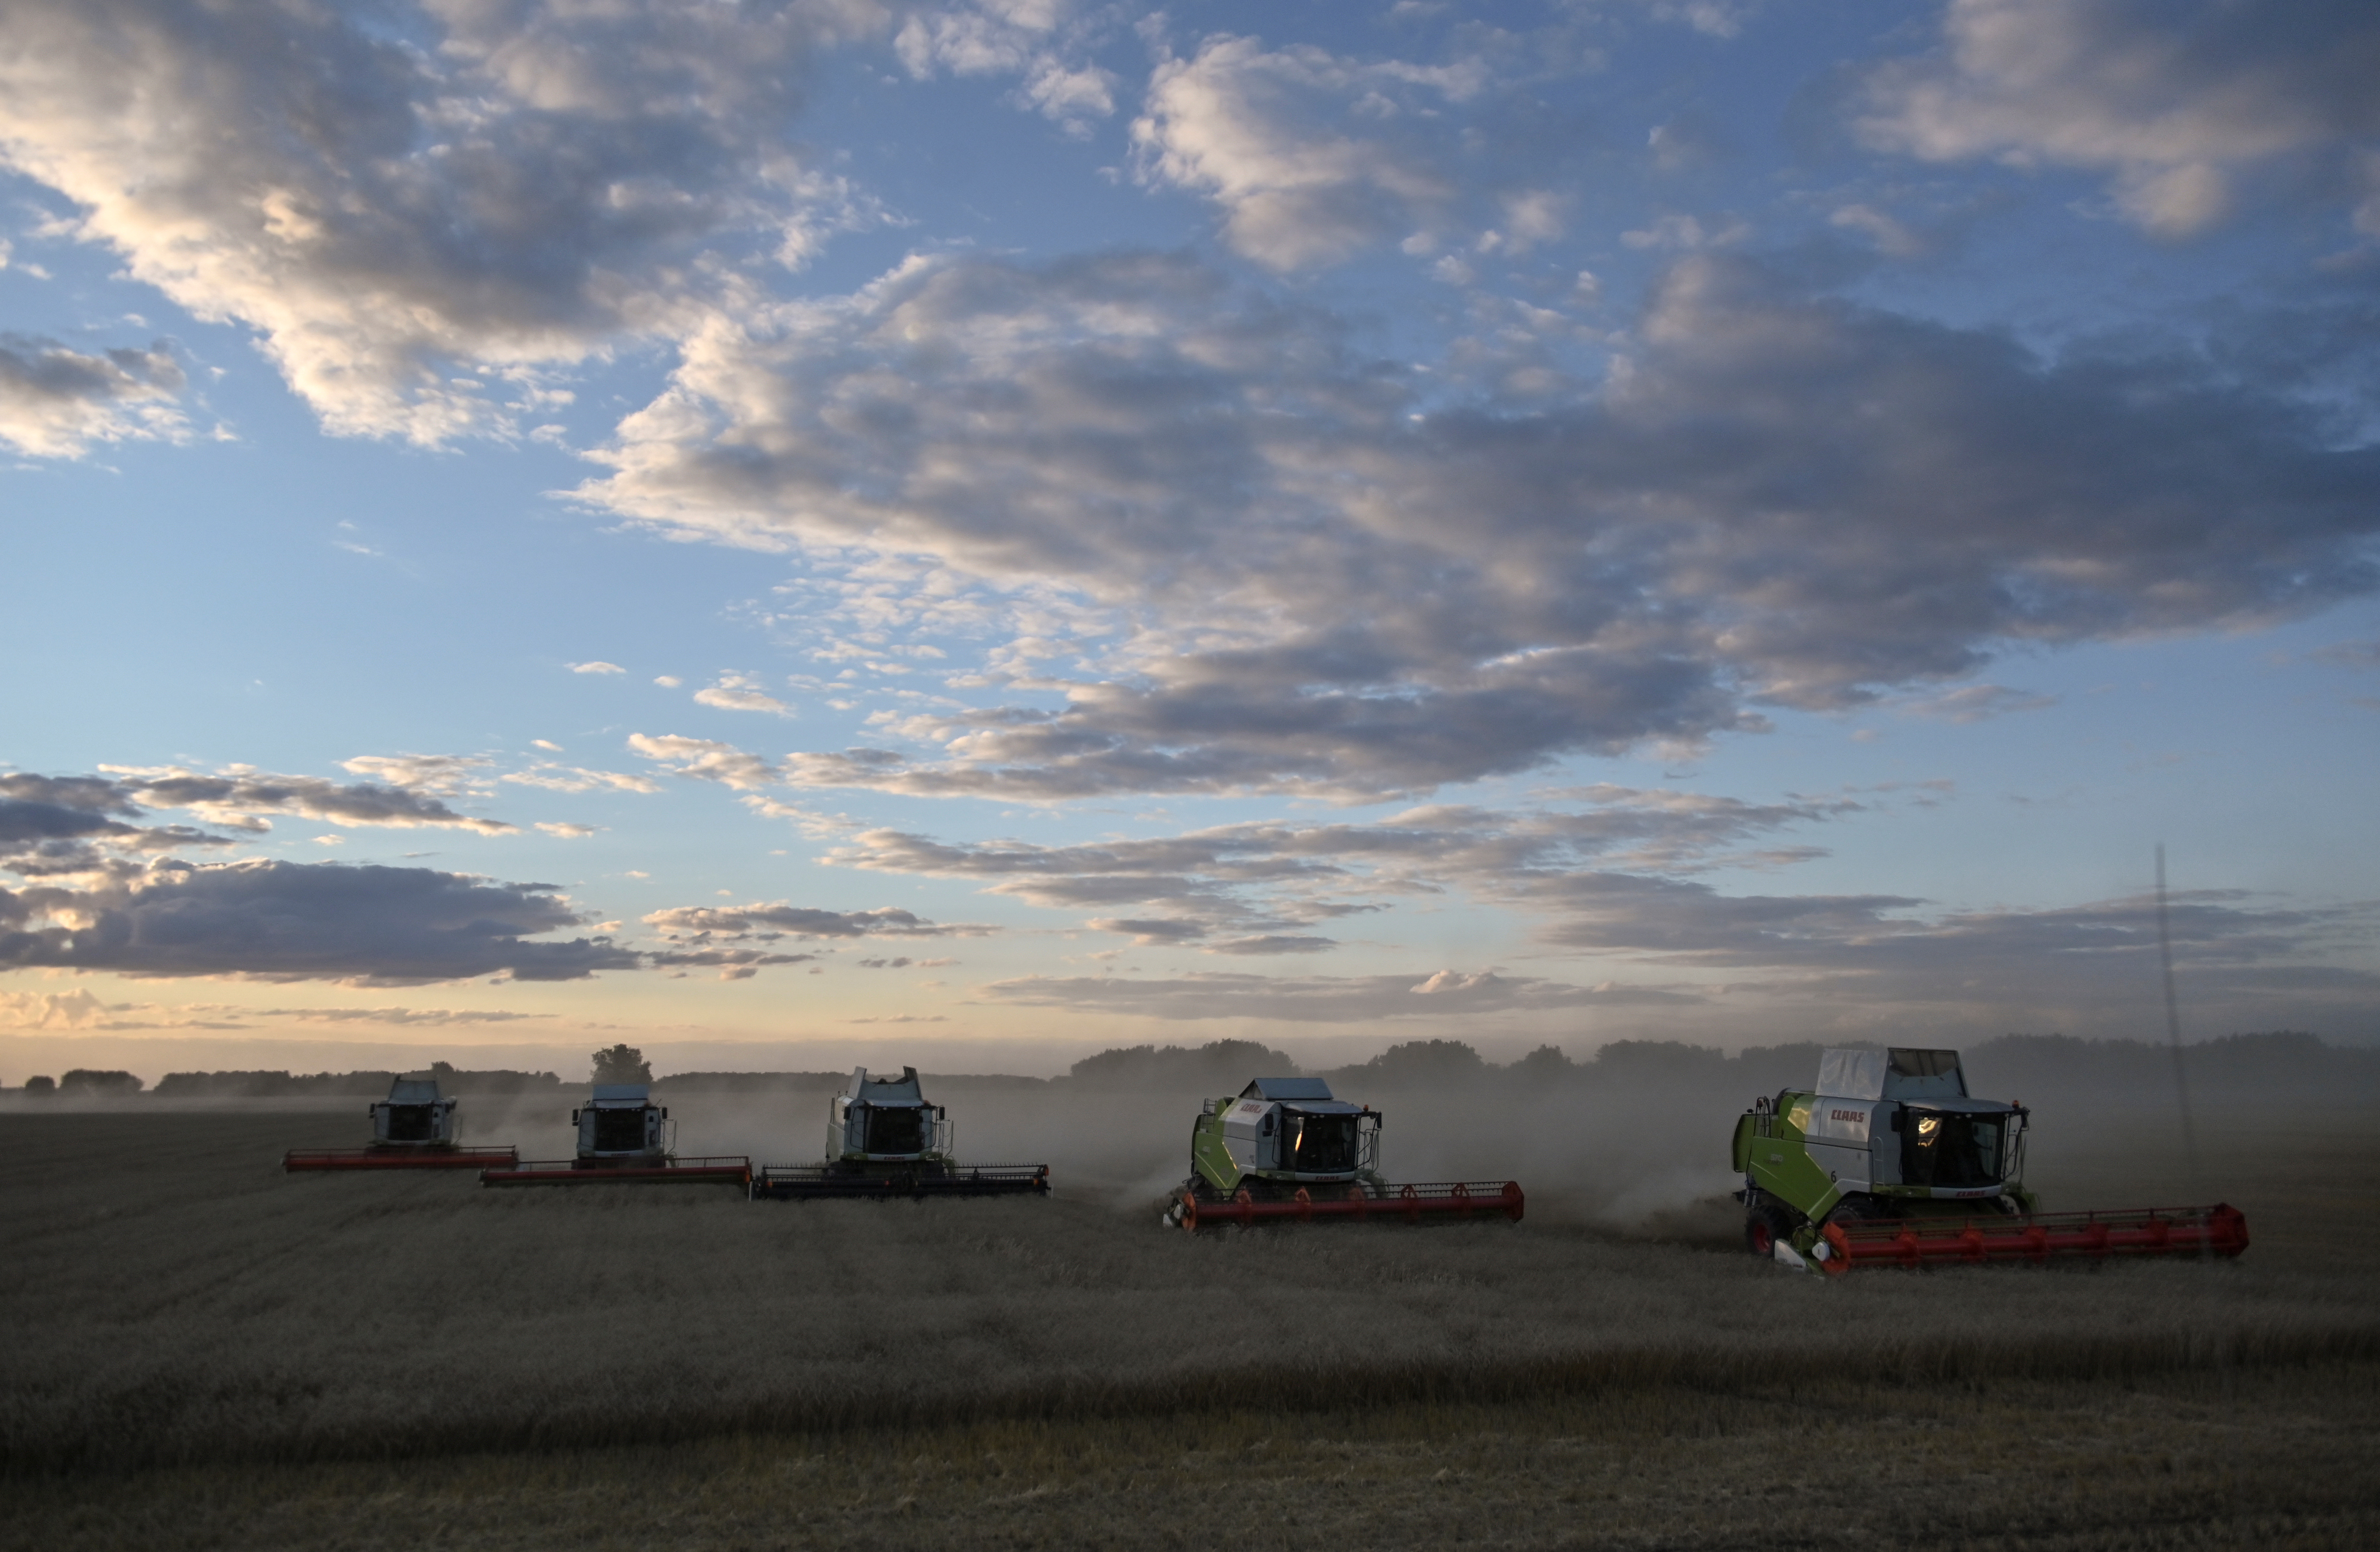 a picture of combine harvesters harvesting a wheat field